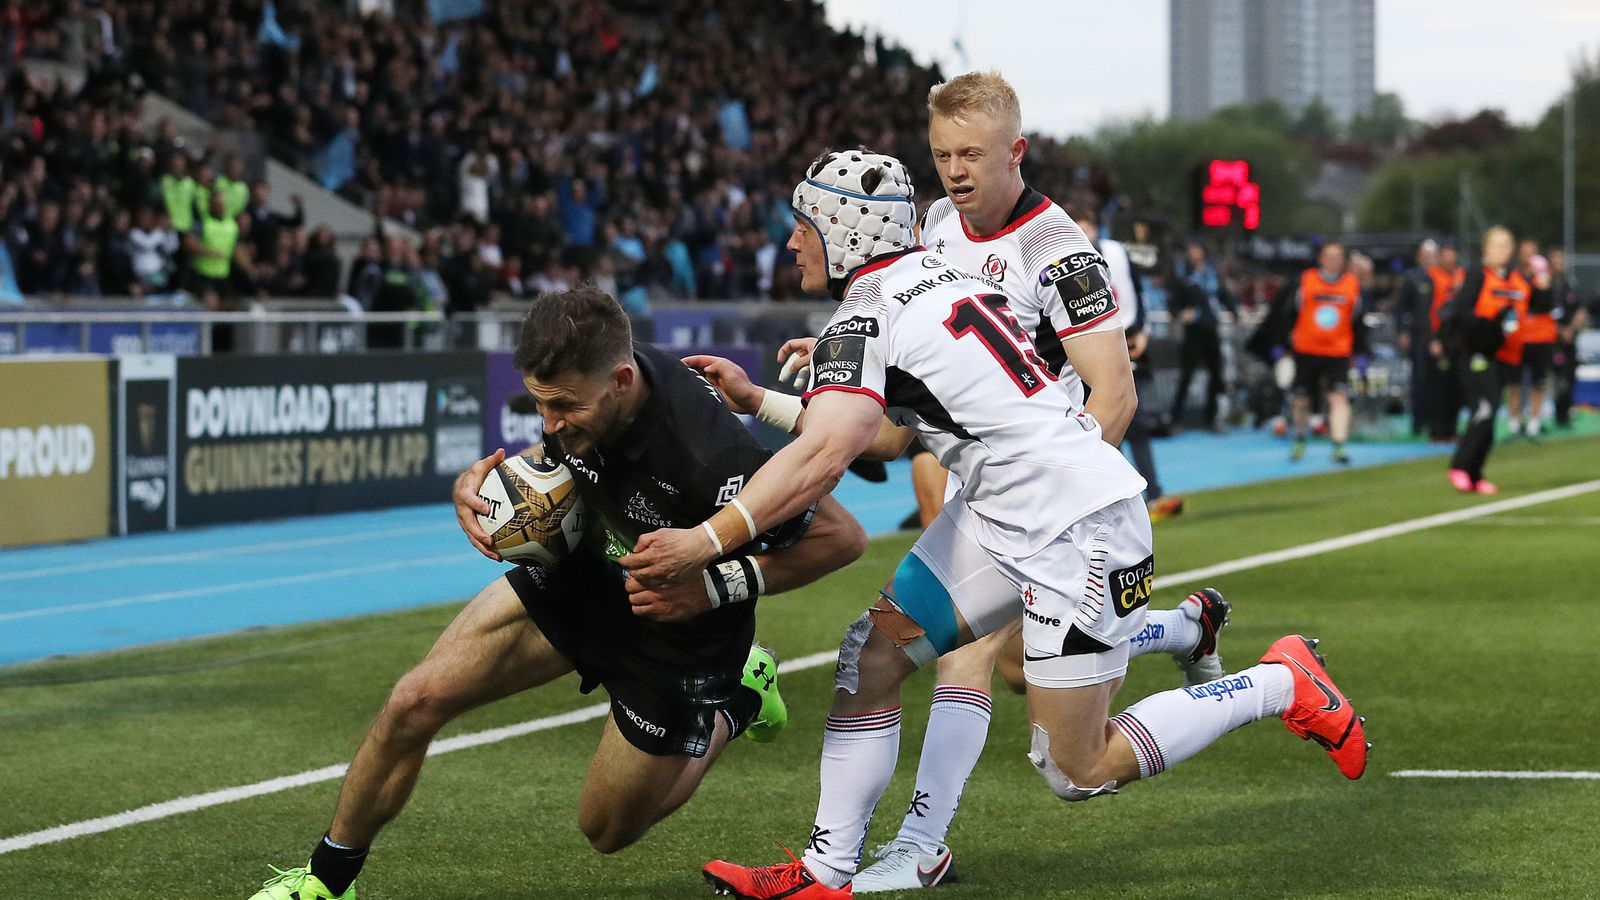 Glasgow 50 - 20 Ulster - Match Report & Highlights